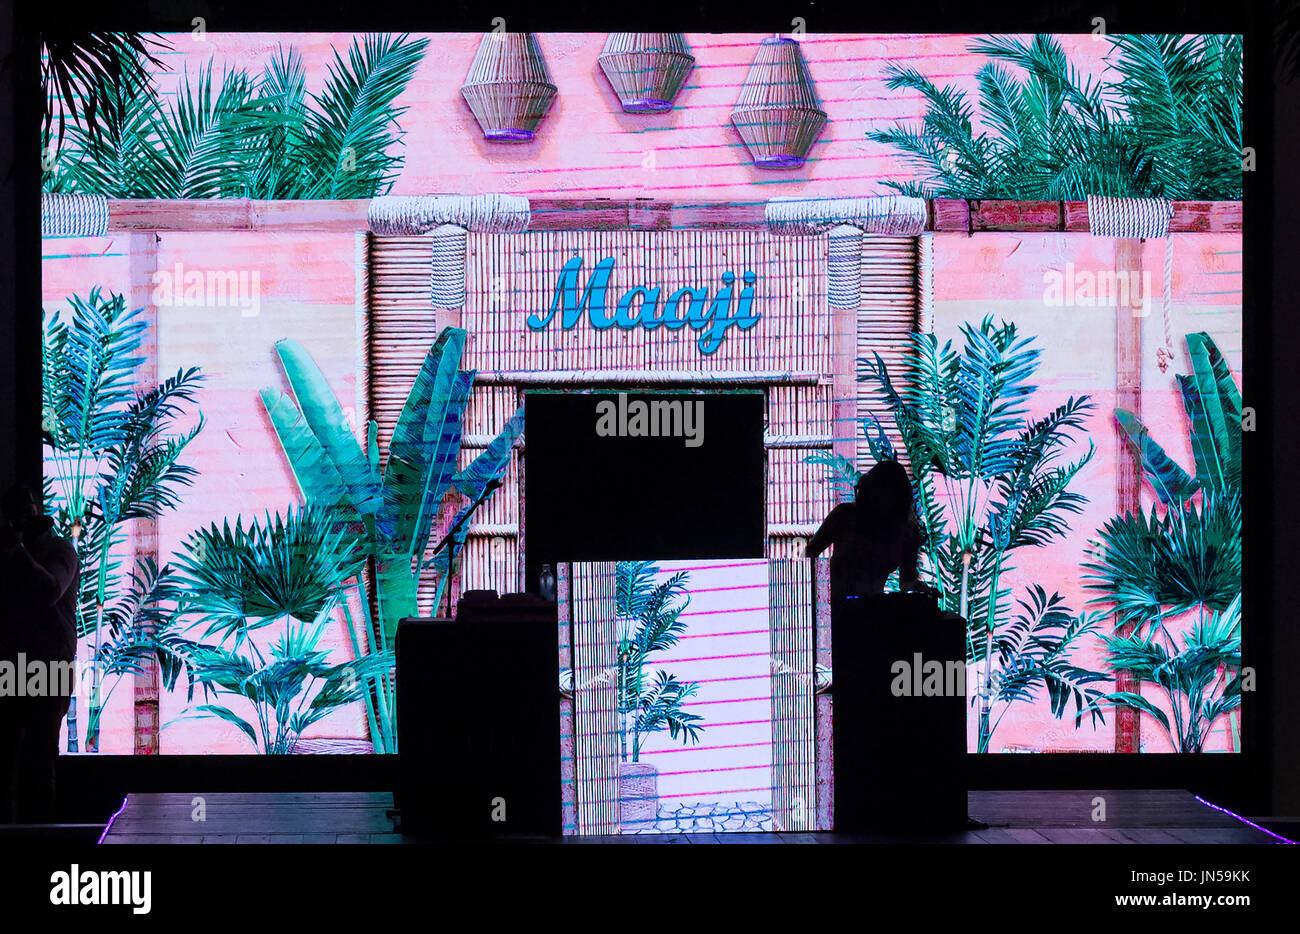 Miami Beach, FL - July 23, 2017: A view of the set for the